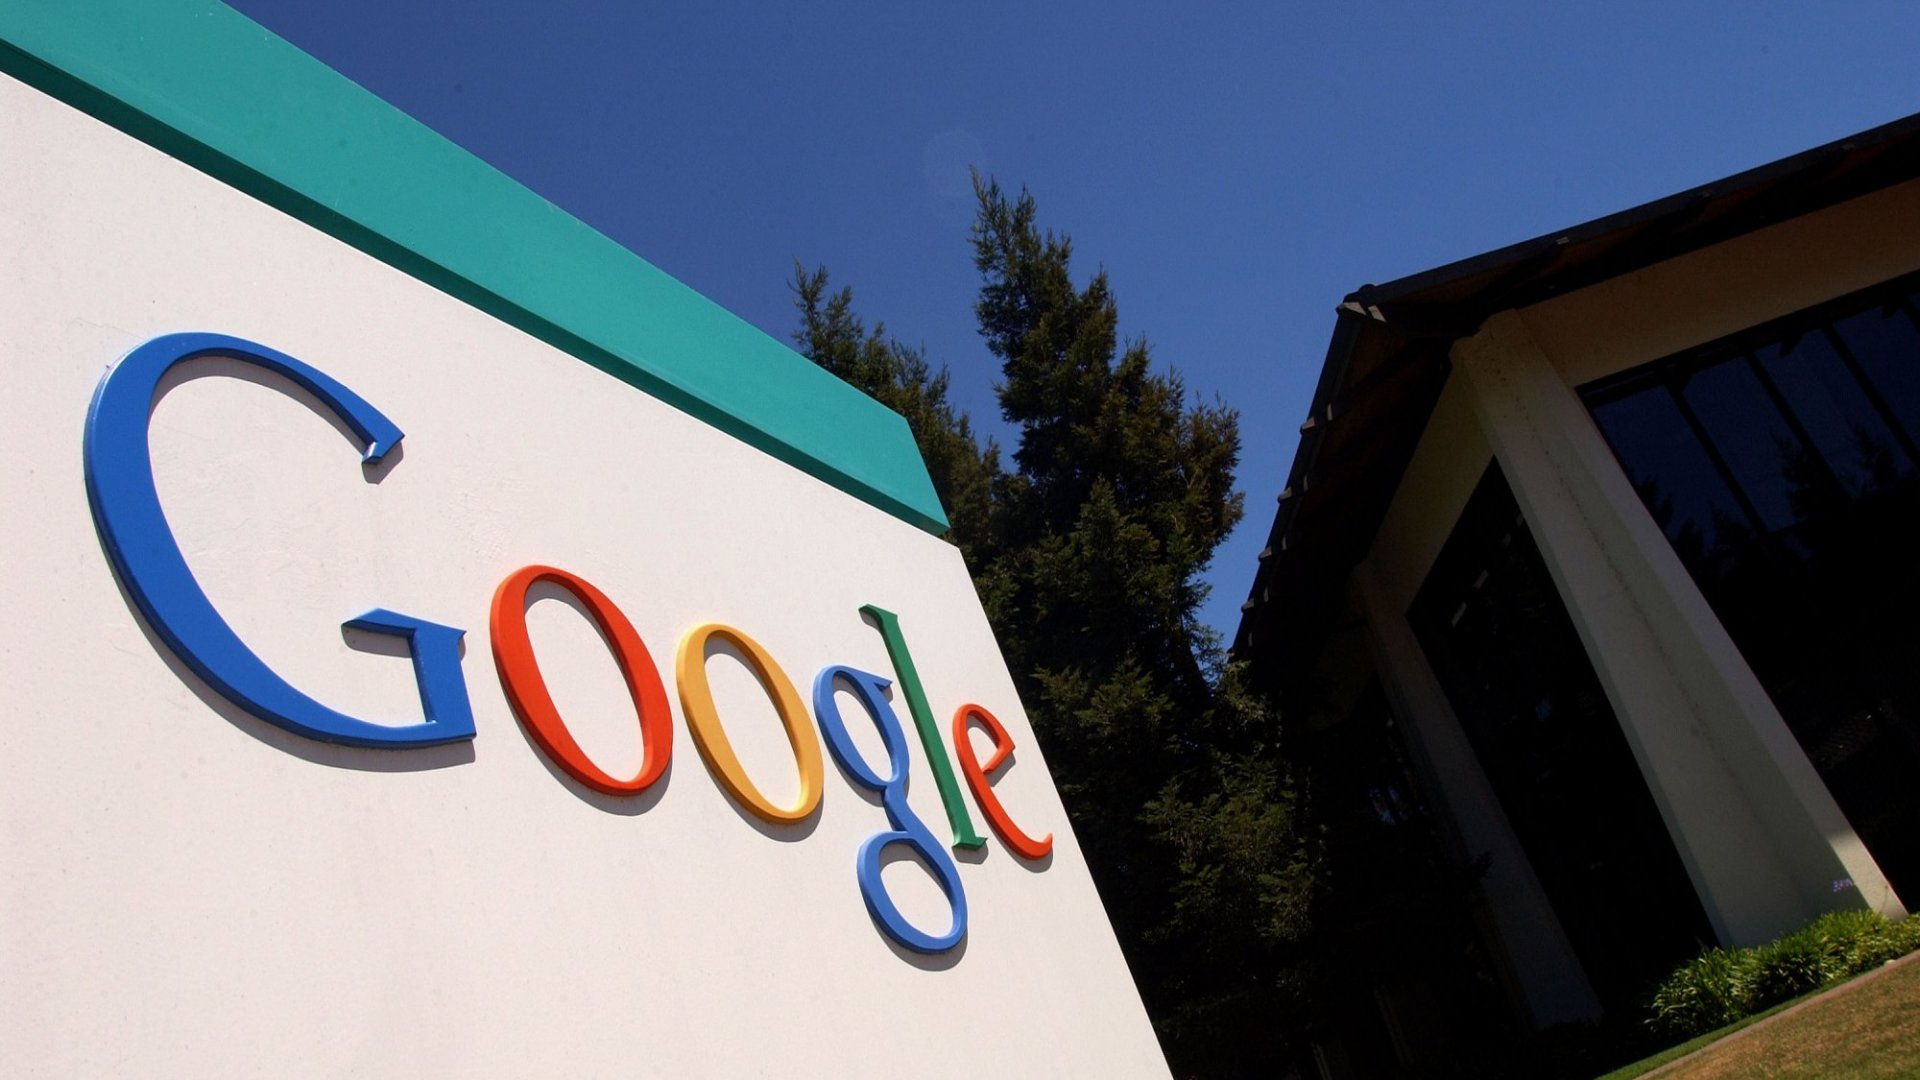 Google Will End Customer Support Through Social Media on January 1, 2020